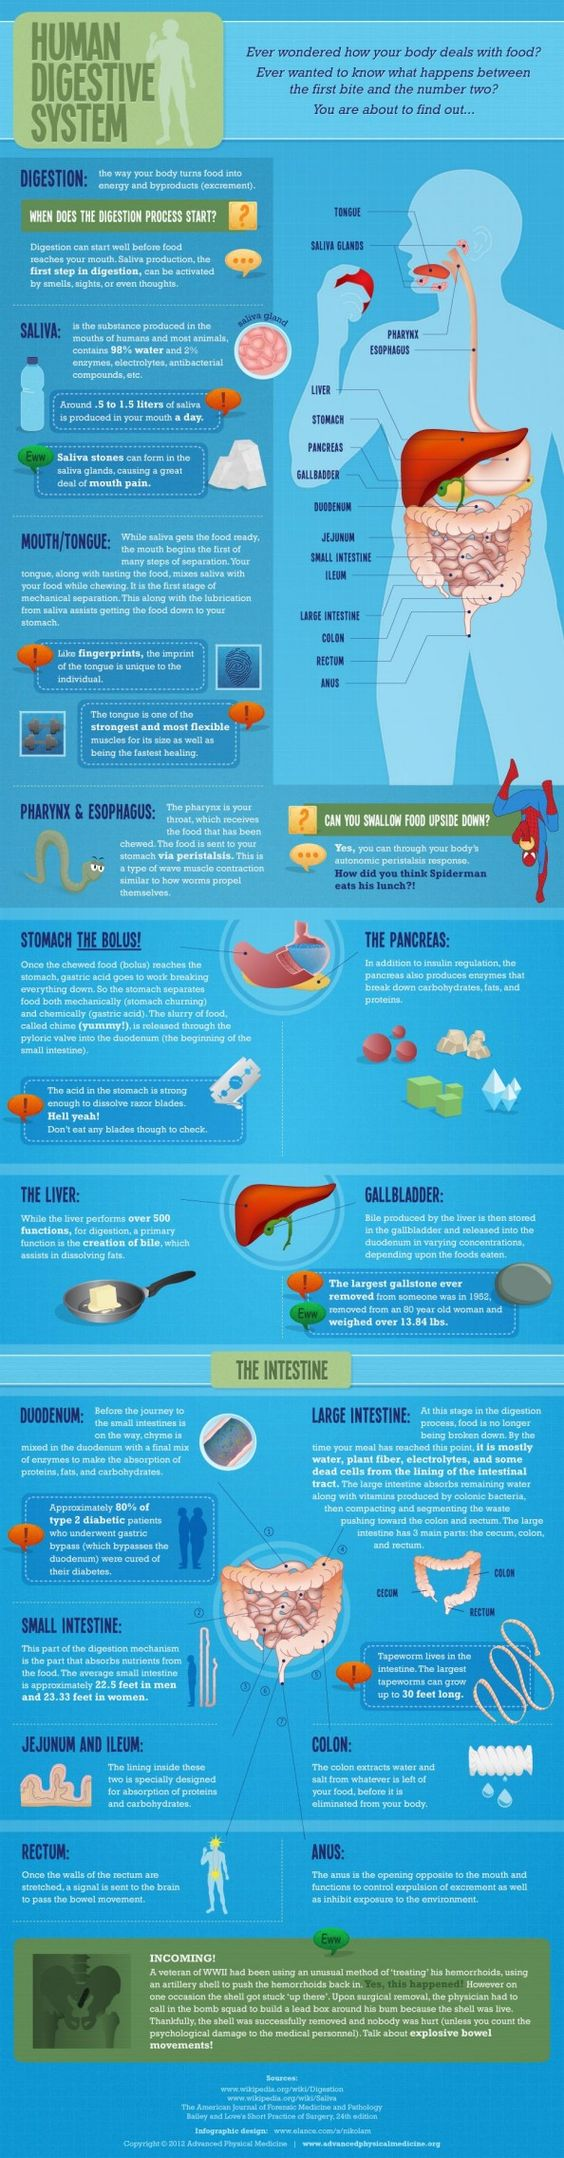 Health | Tipsographic | More health tips at http://www.tipsographic.com/